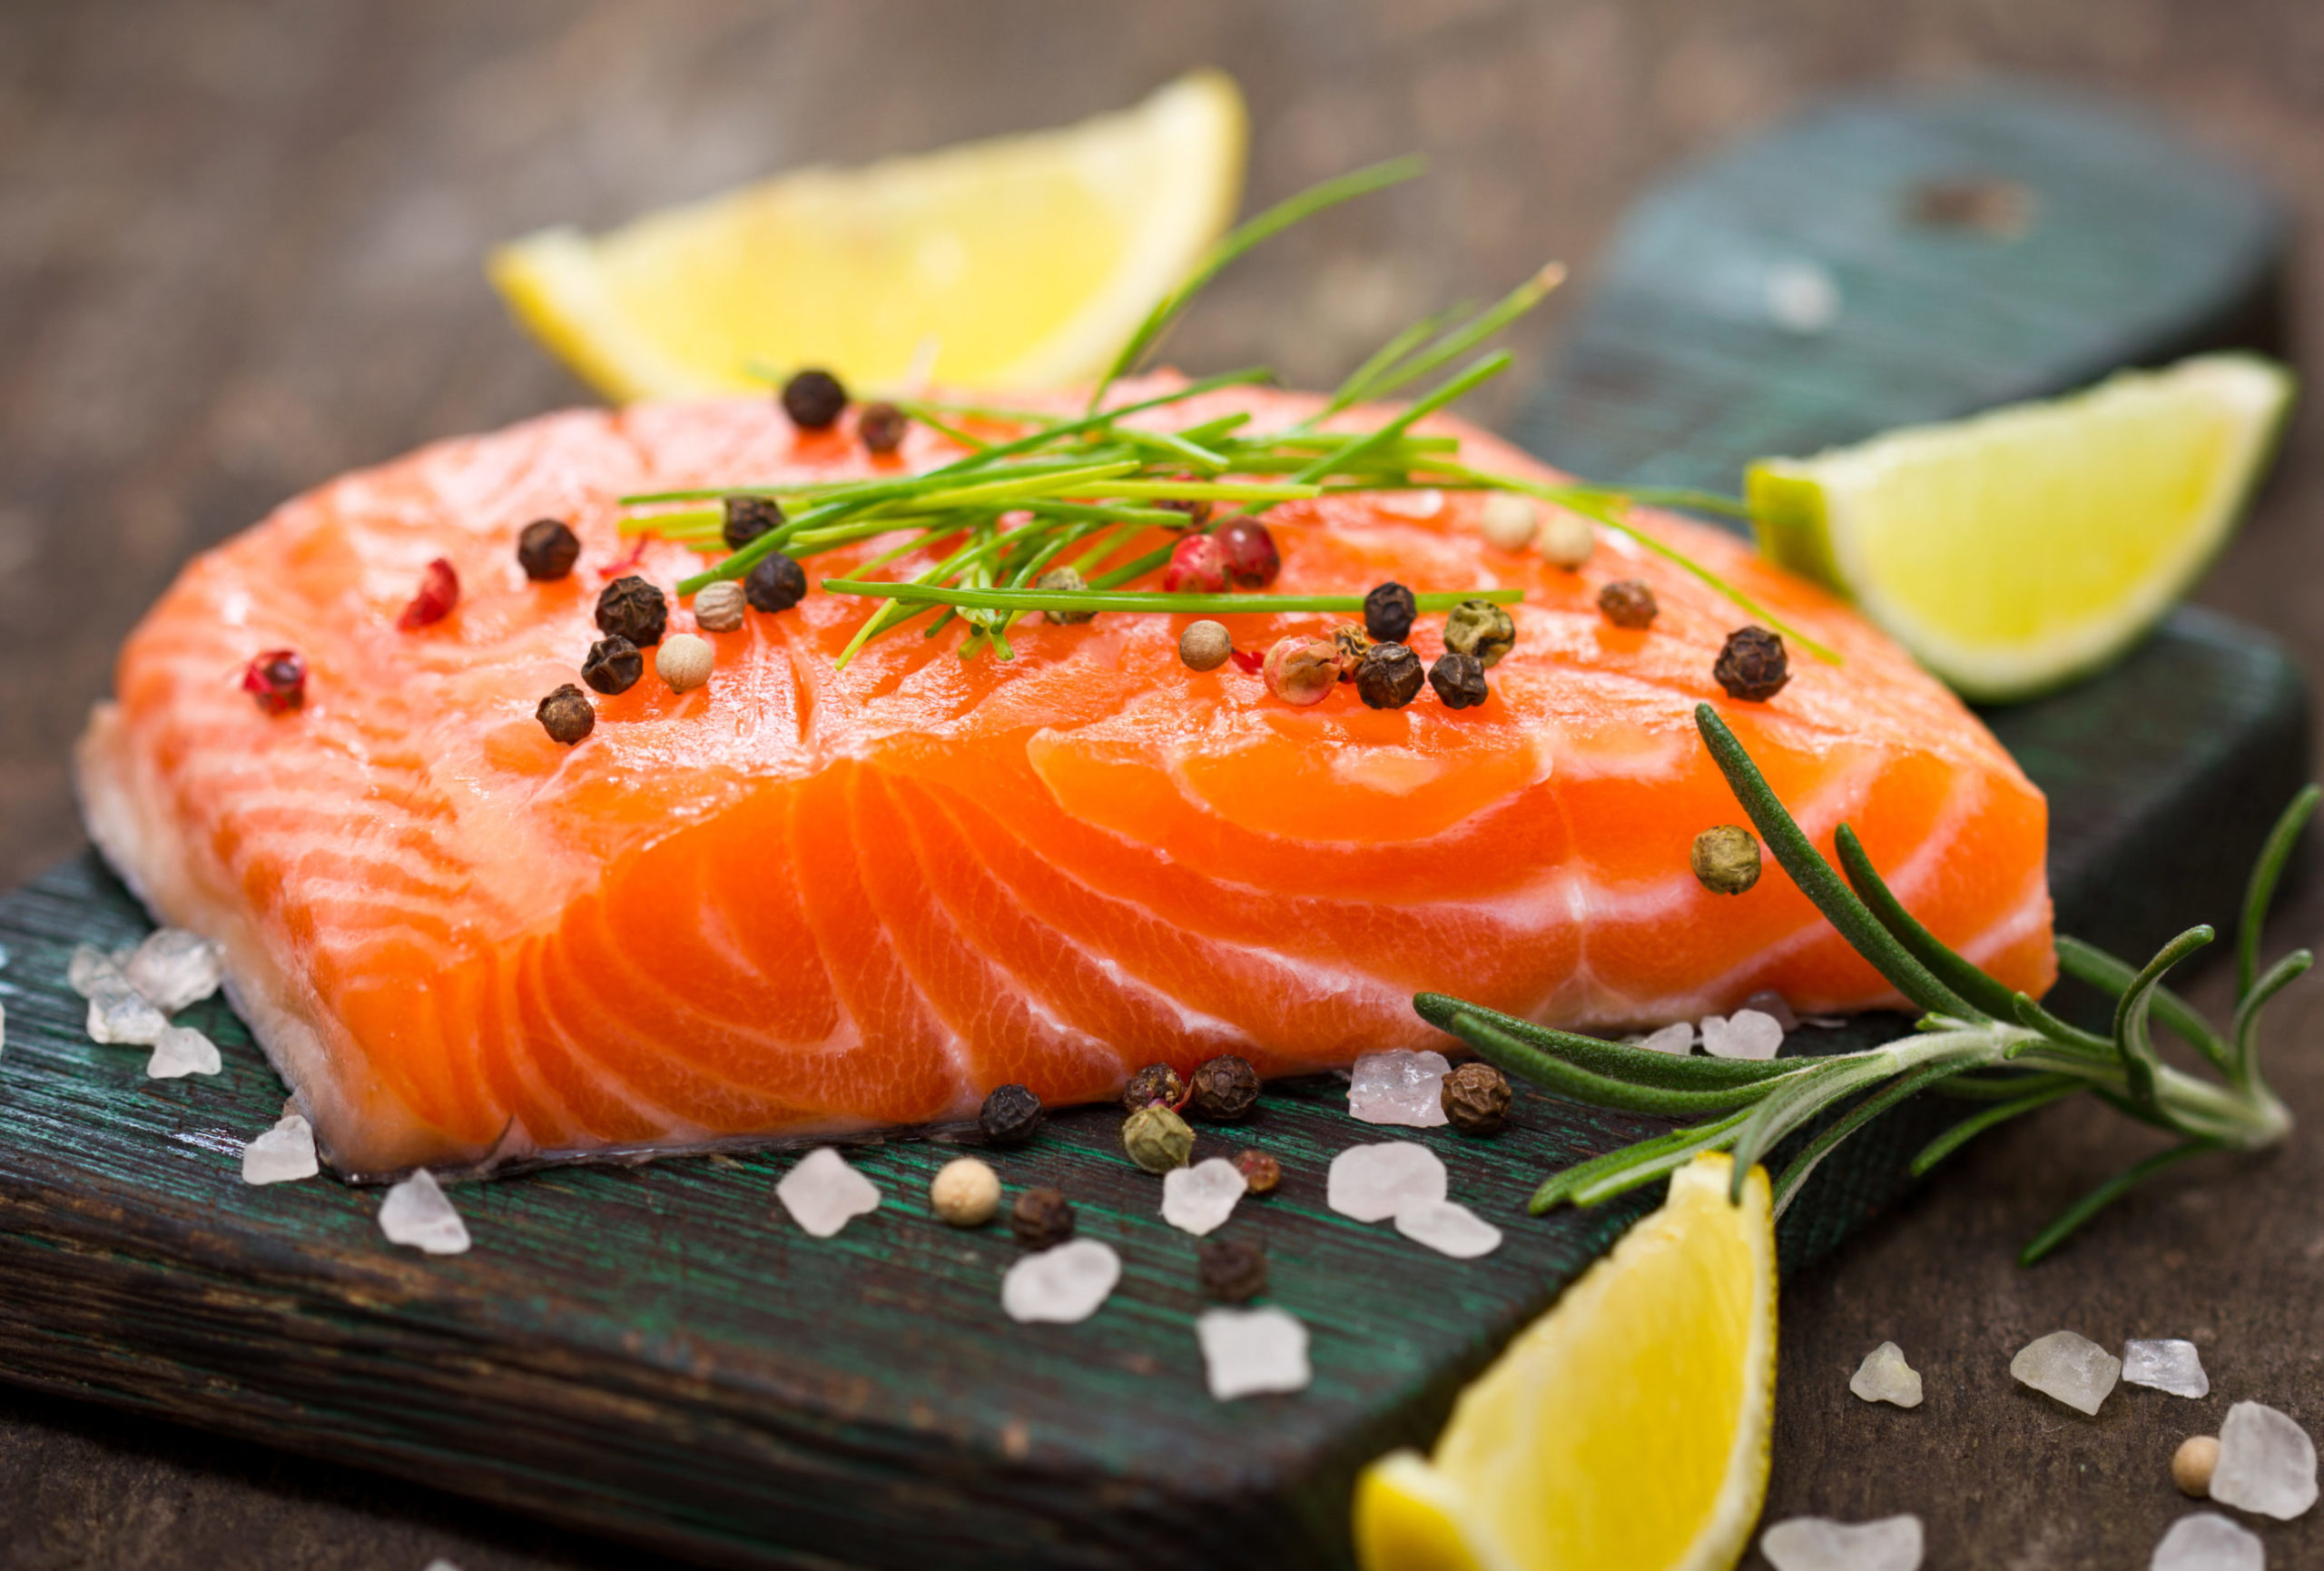 How Long to Cook Salmon in Pan